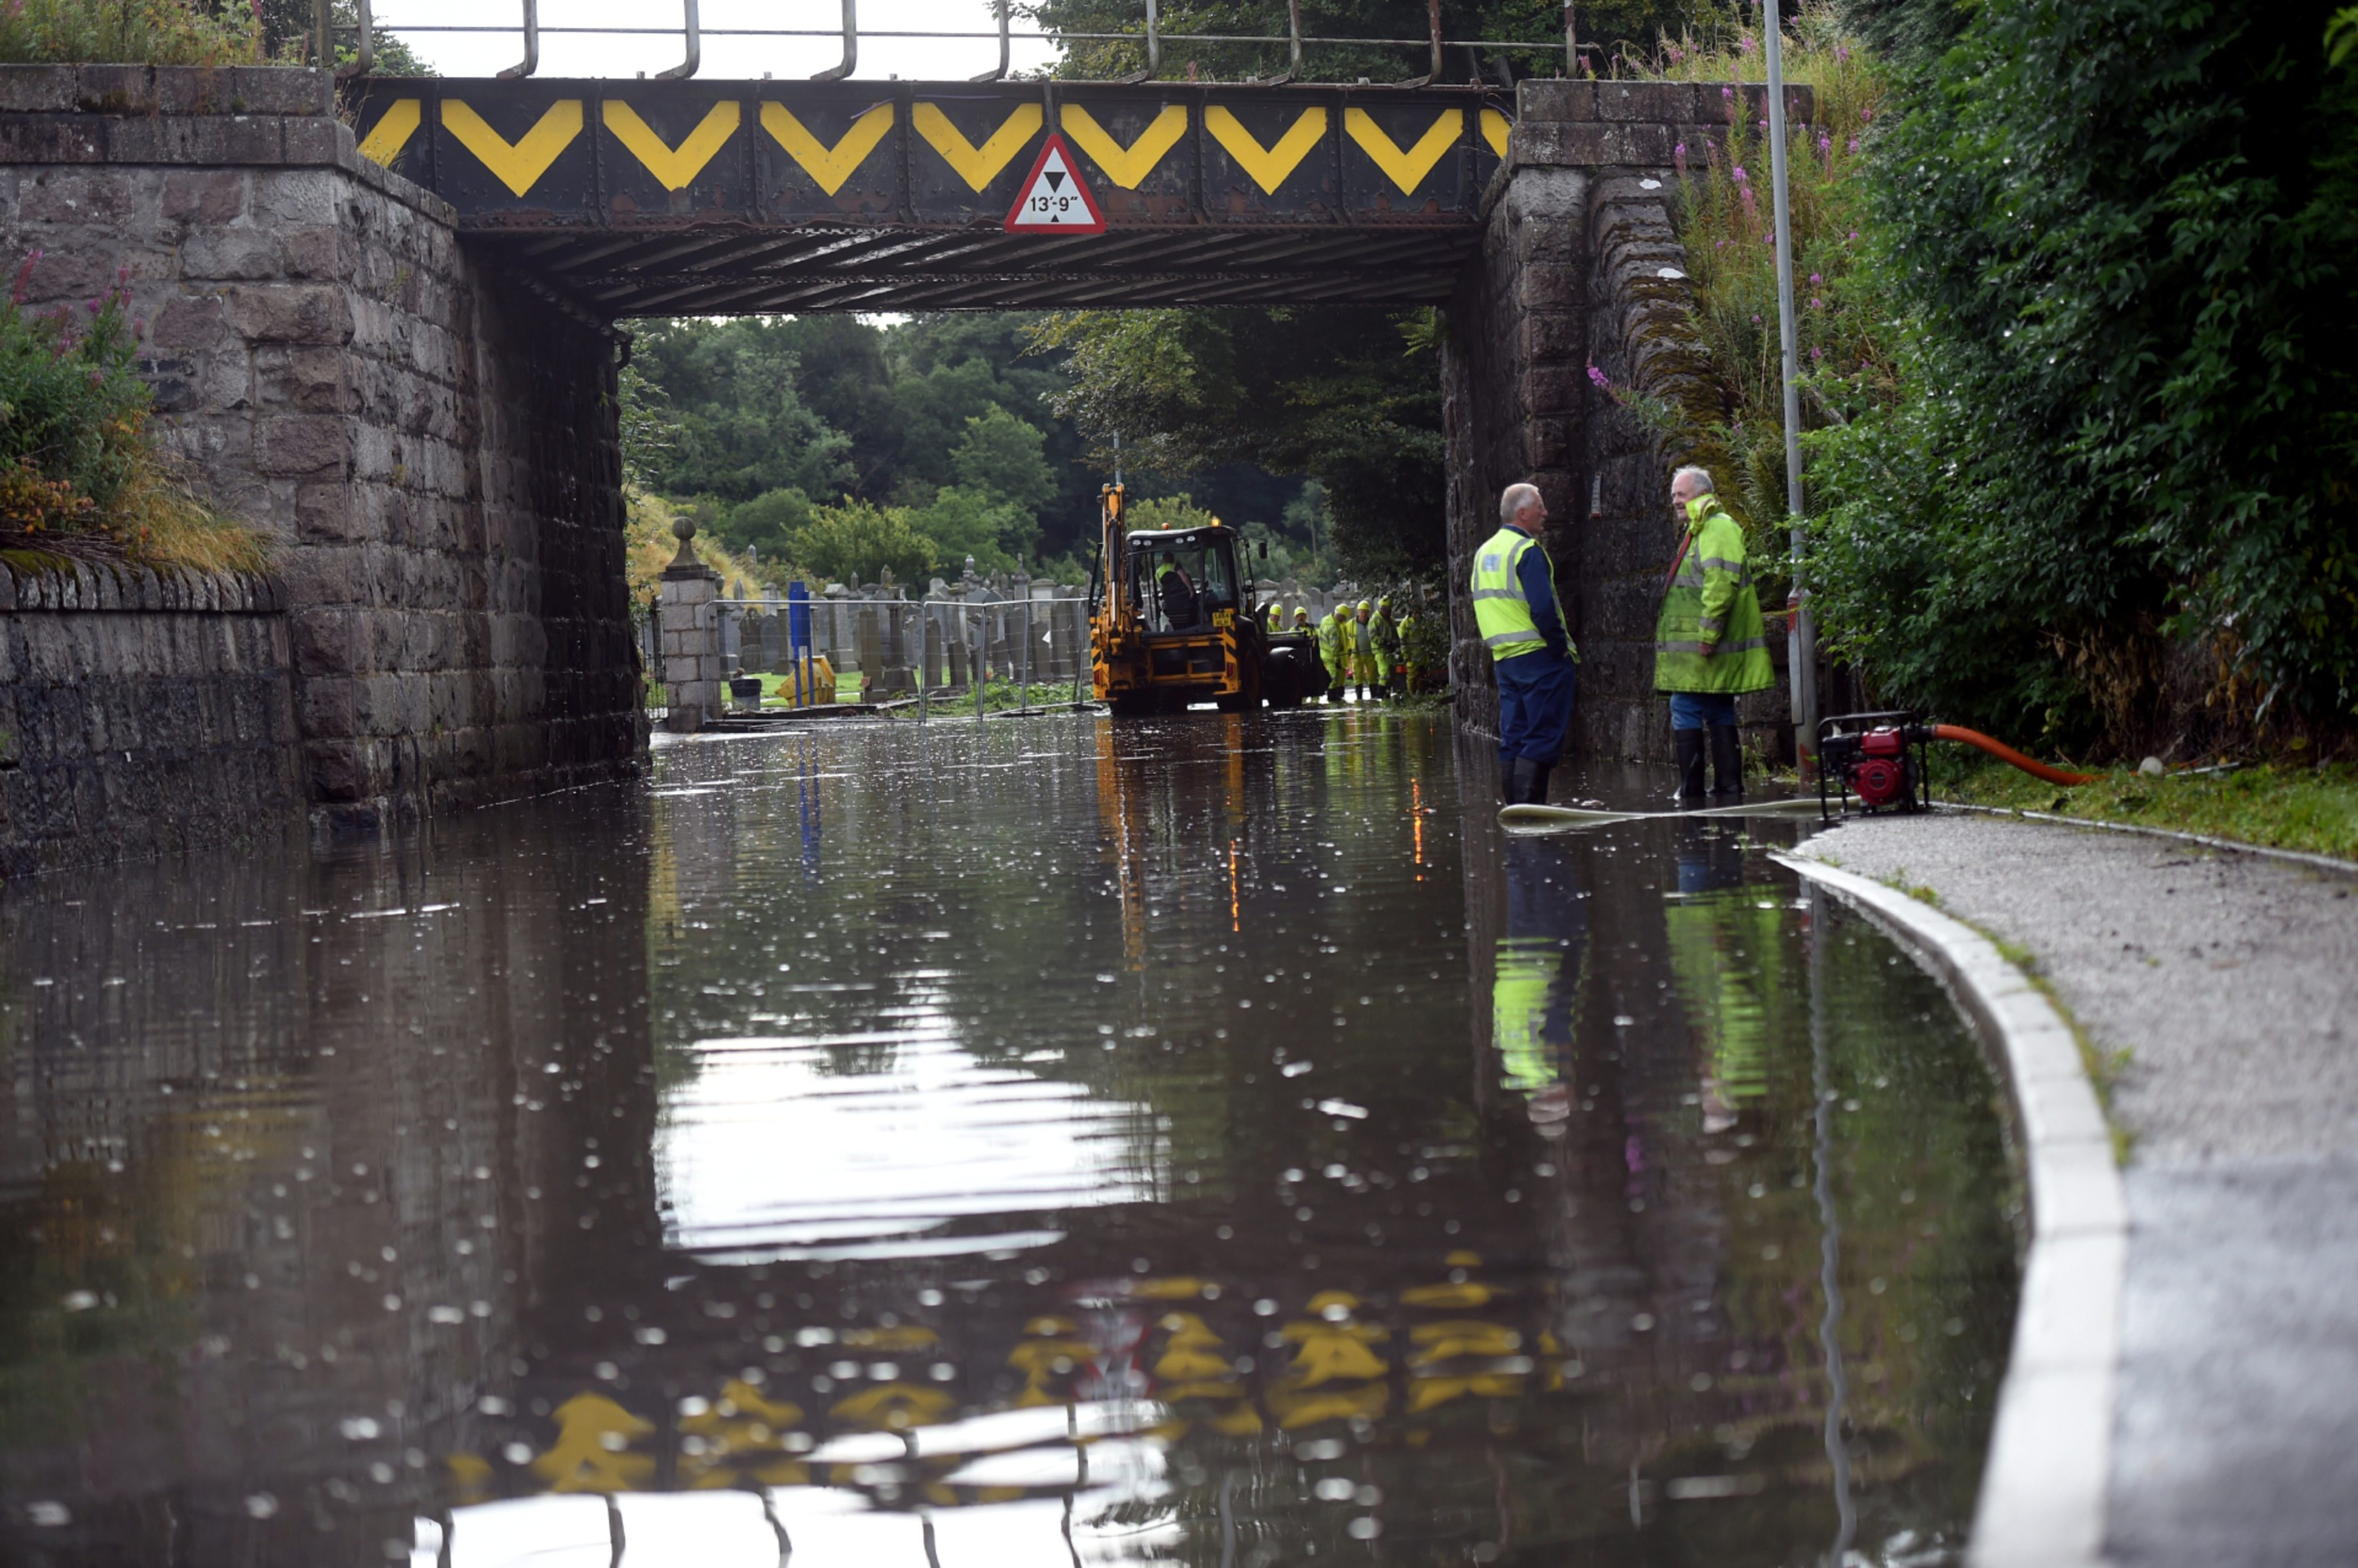 Flooding under the railway bridge on Keithhall Road, Inverurie in 2017.